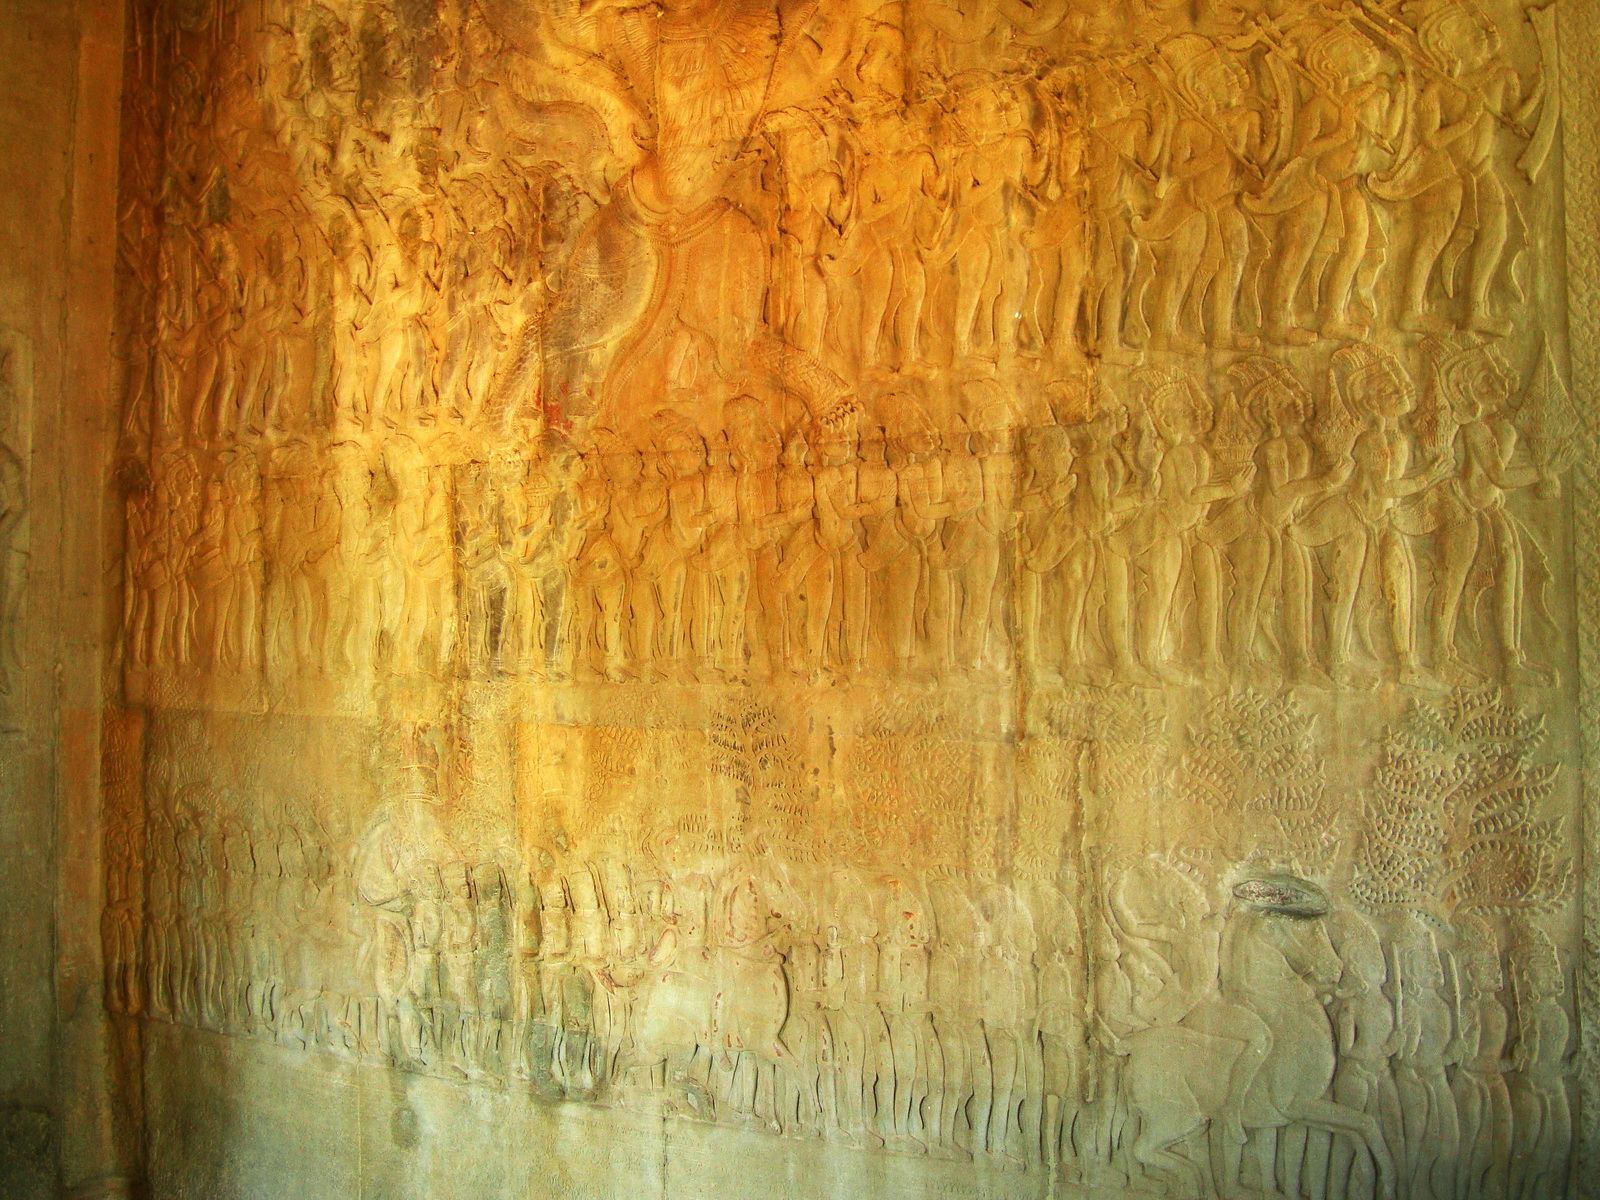 Angkor Wat Bas relief N Gallery W Wing Battle of Devas and Asuras 03